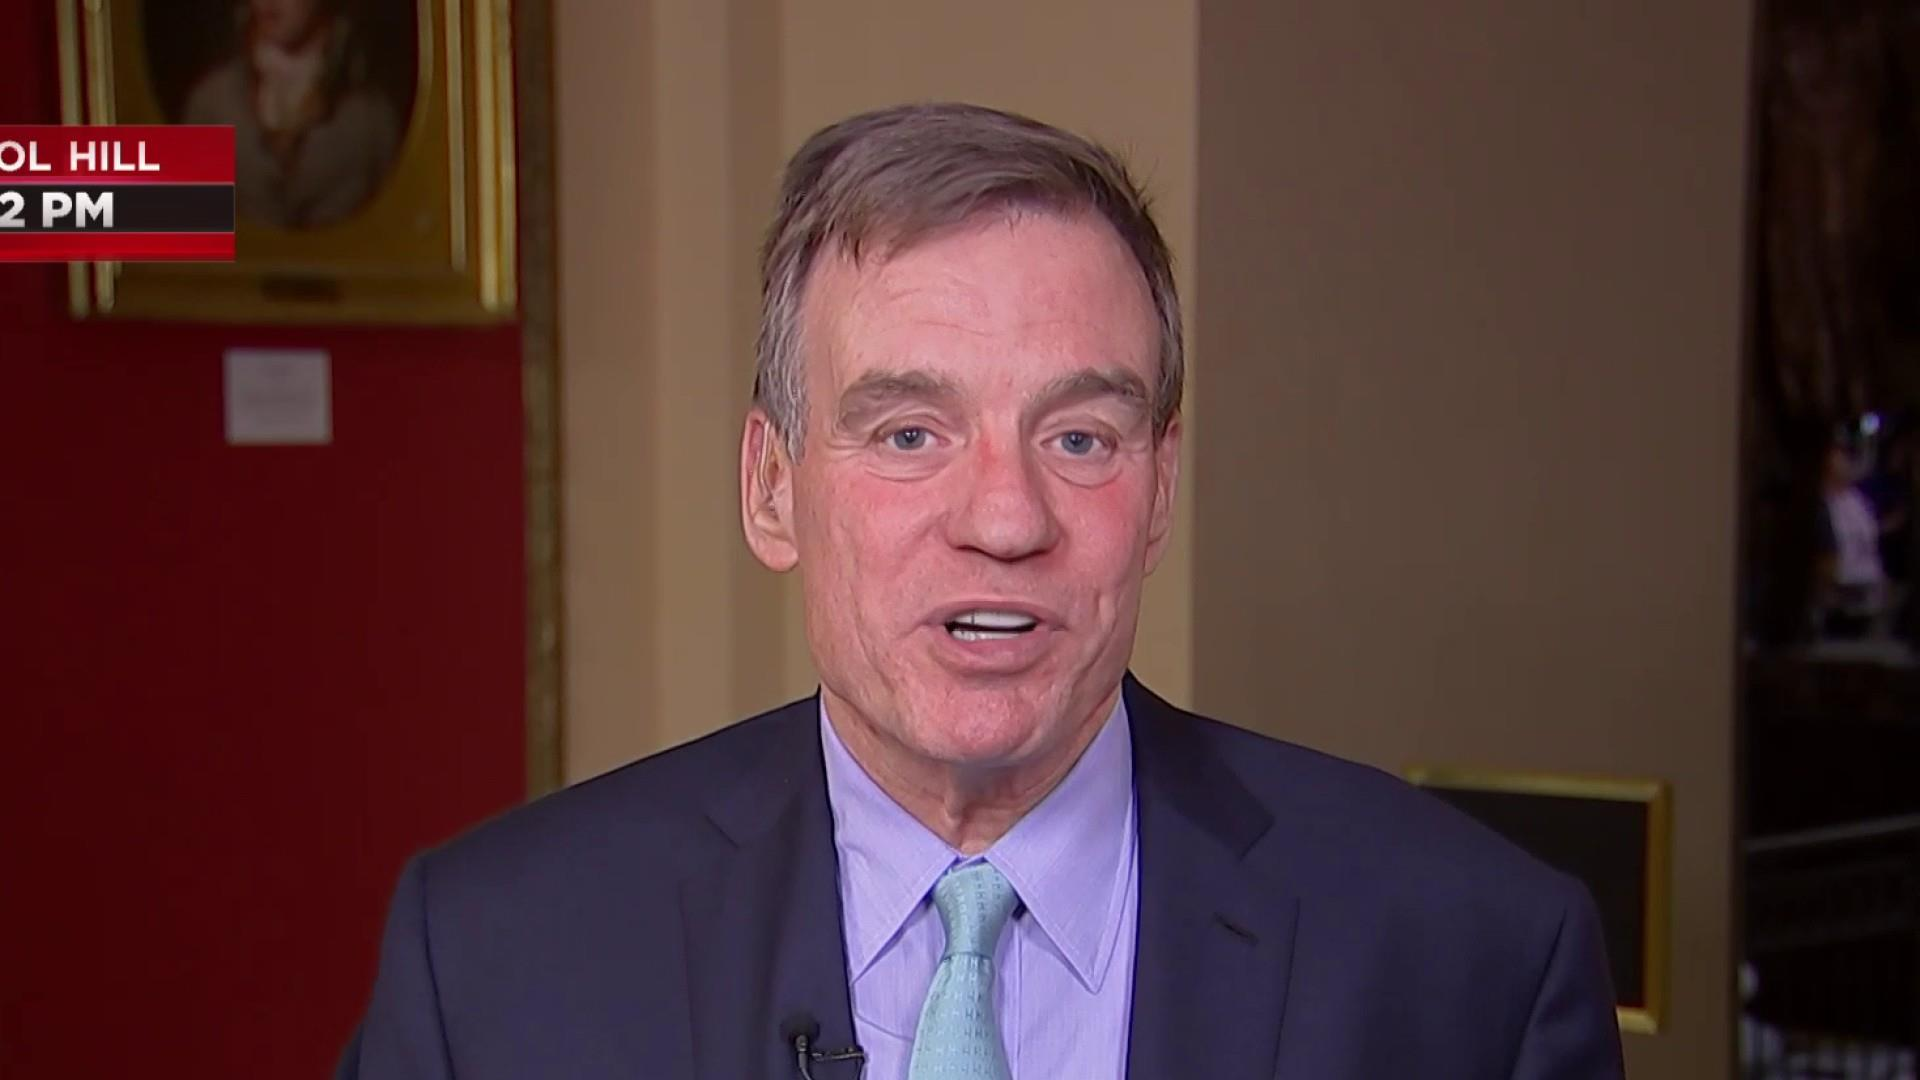 Top Senate Intel Dem: Trump shows he has 'little moral compass' with foreign info comments